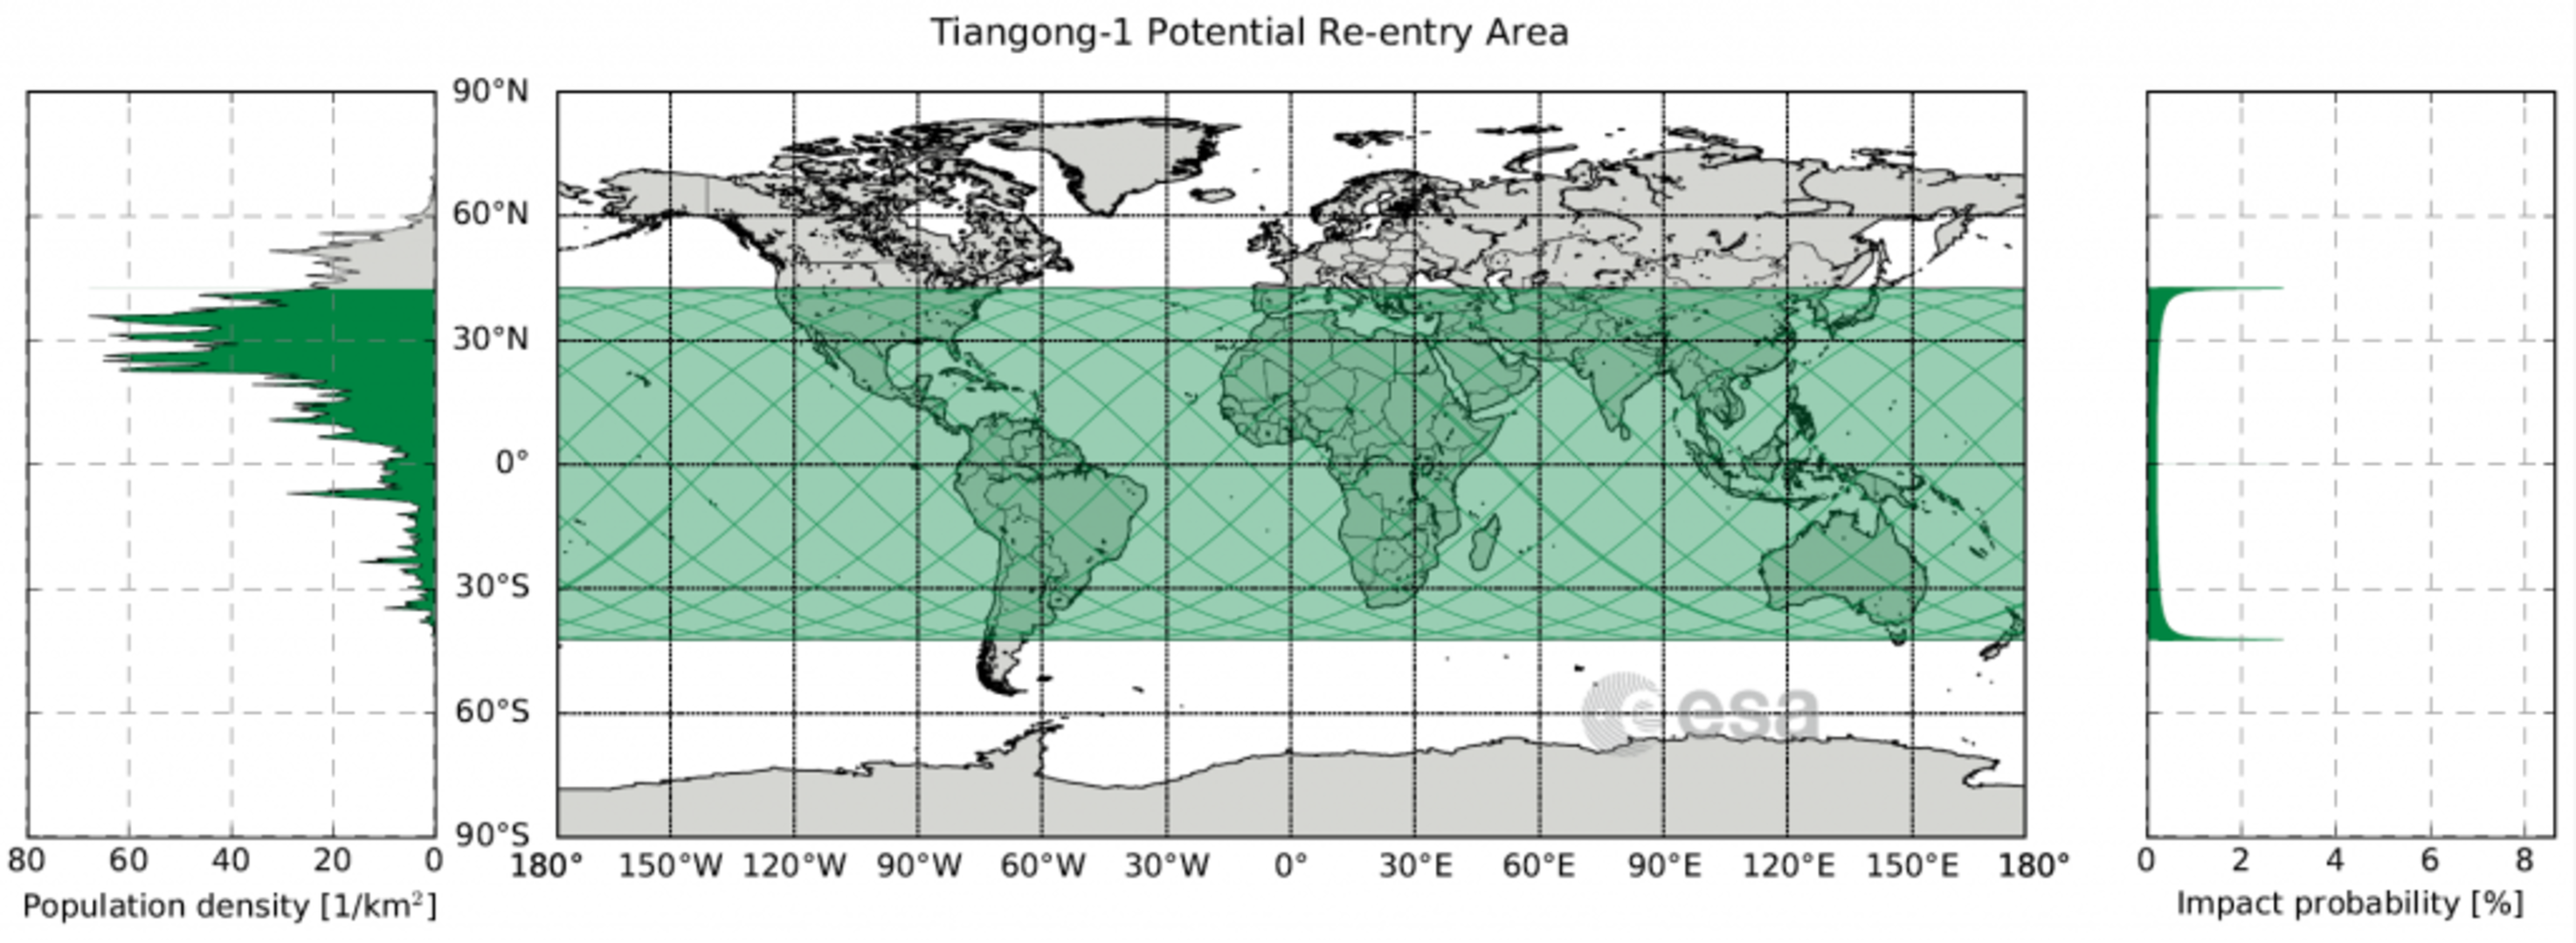 Tiangong 1 - Risk map